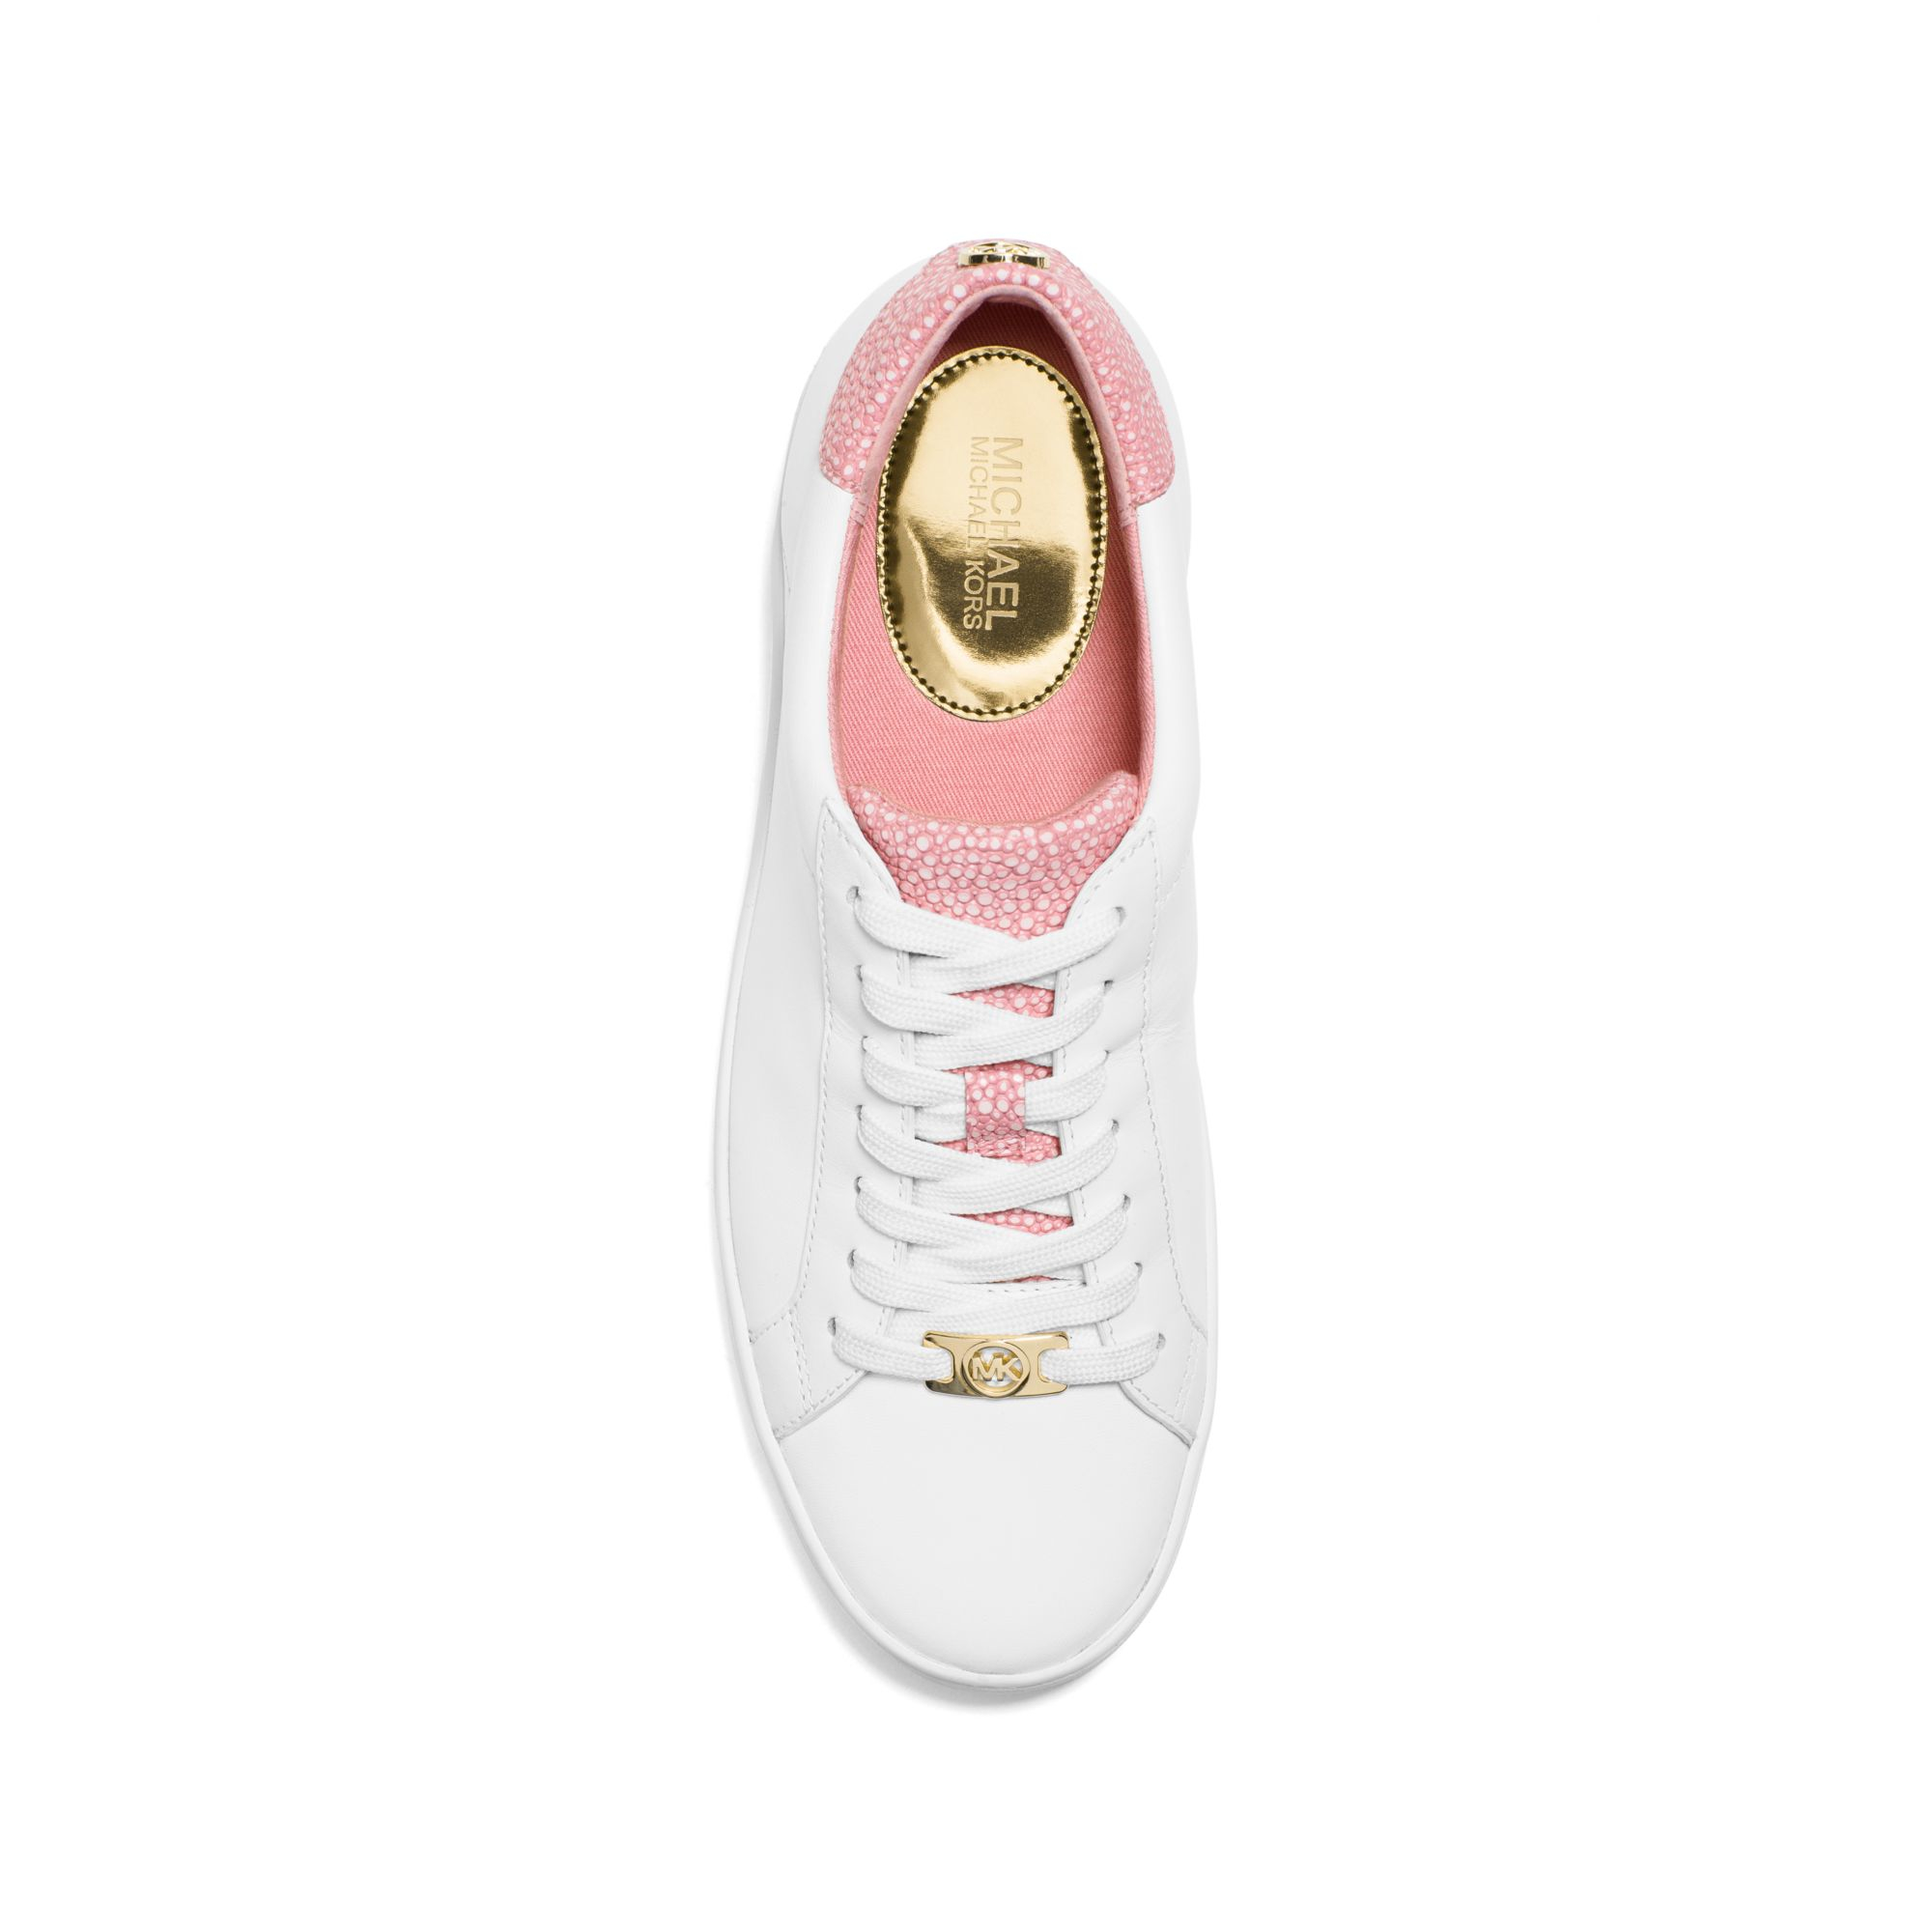 59d2dbef2767 Michael Kors Irving Leather Sneaker in Pink - Lyst